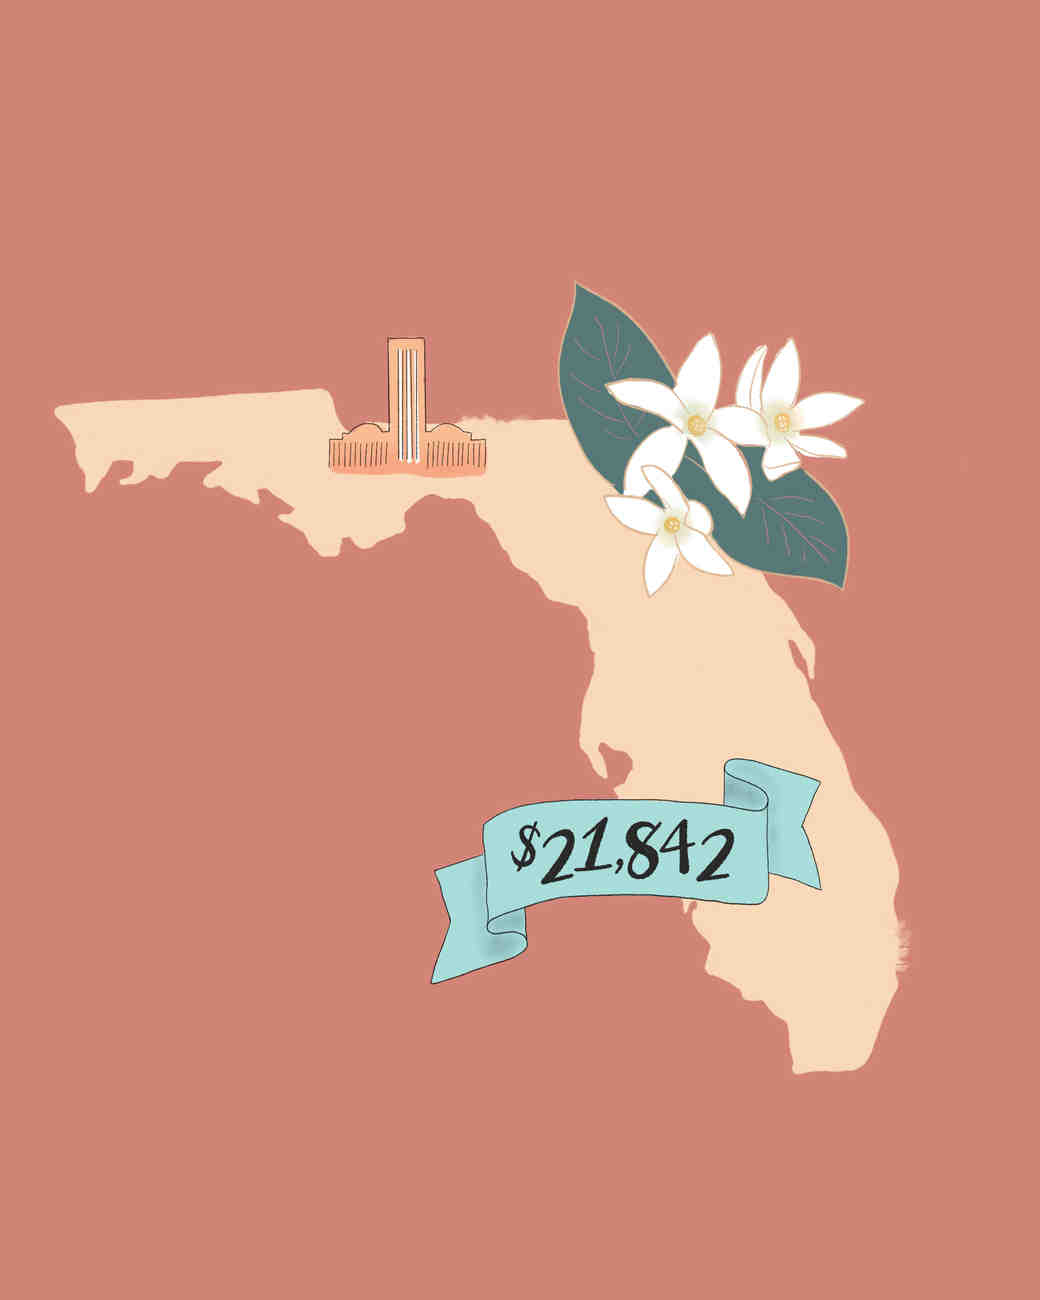 state wedding costs illustration florida